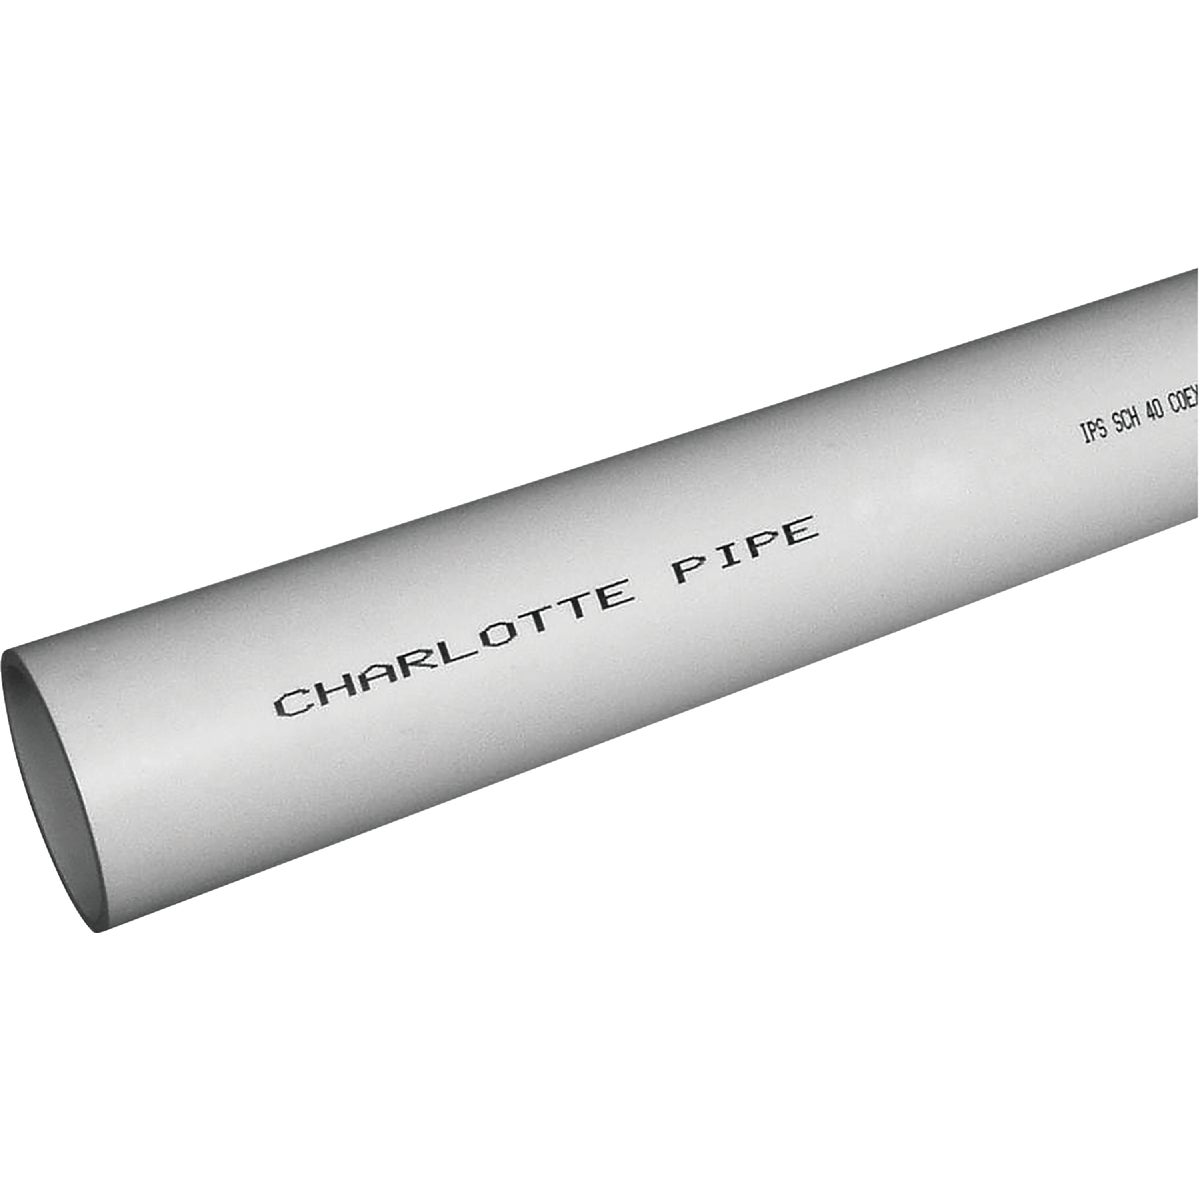 3X5 DWV CC PVC PIPE - 70035F by Genova Inc